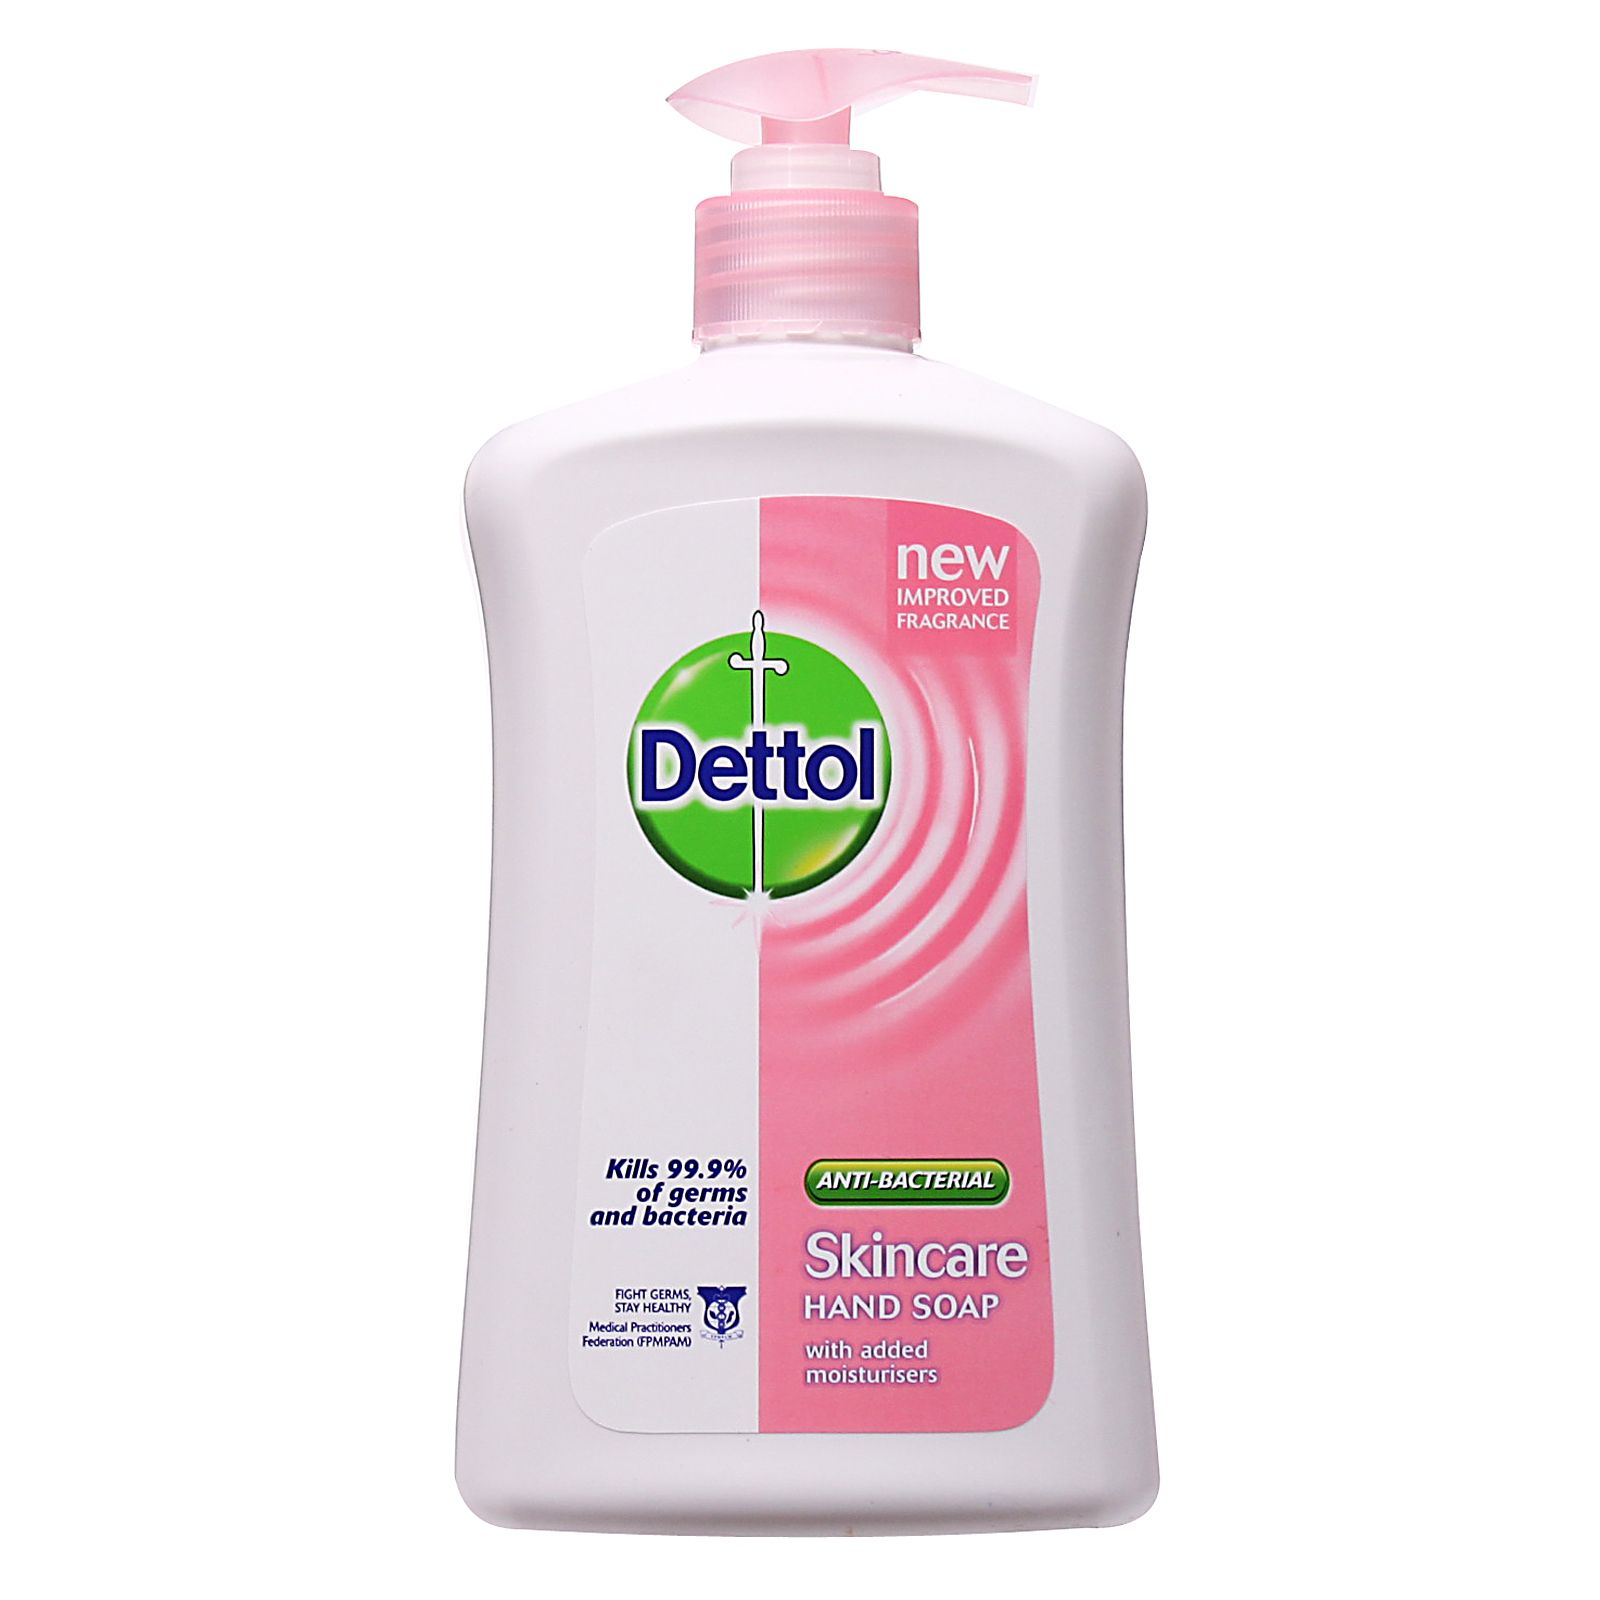 Dettol Skincare Anti Bacterial Hand Soap Redmart Skin Care